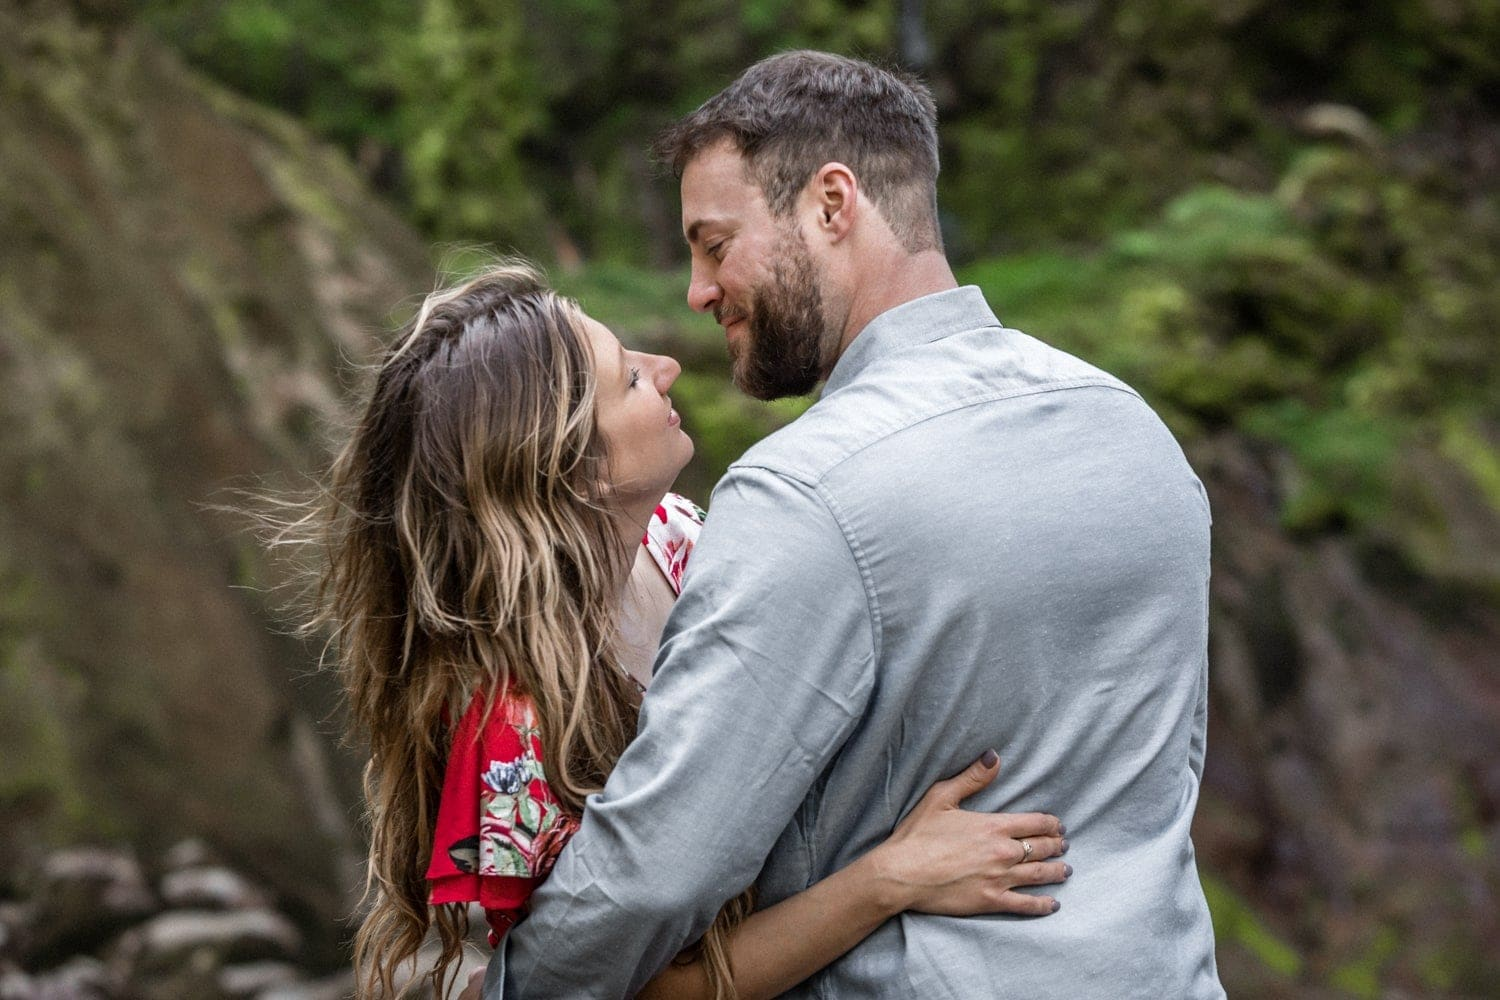 Romantic photo of couple during Costa Rica engagement photo session.